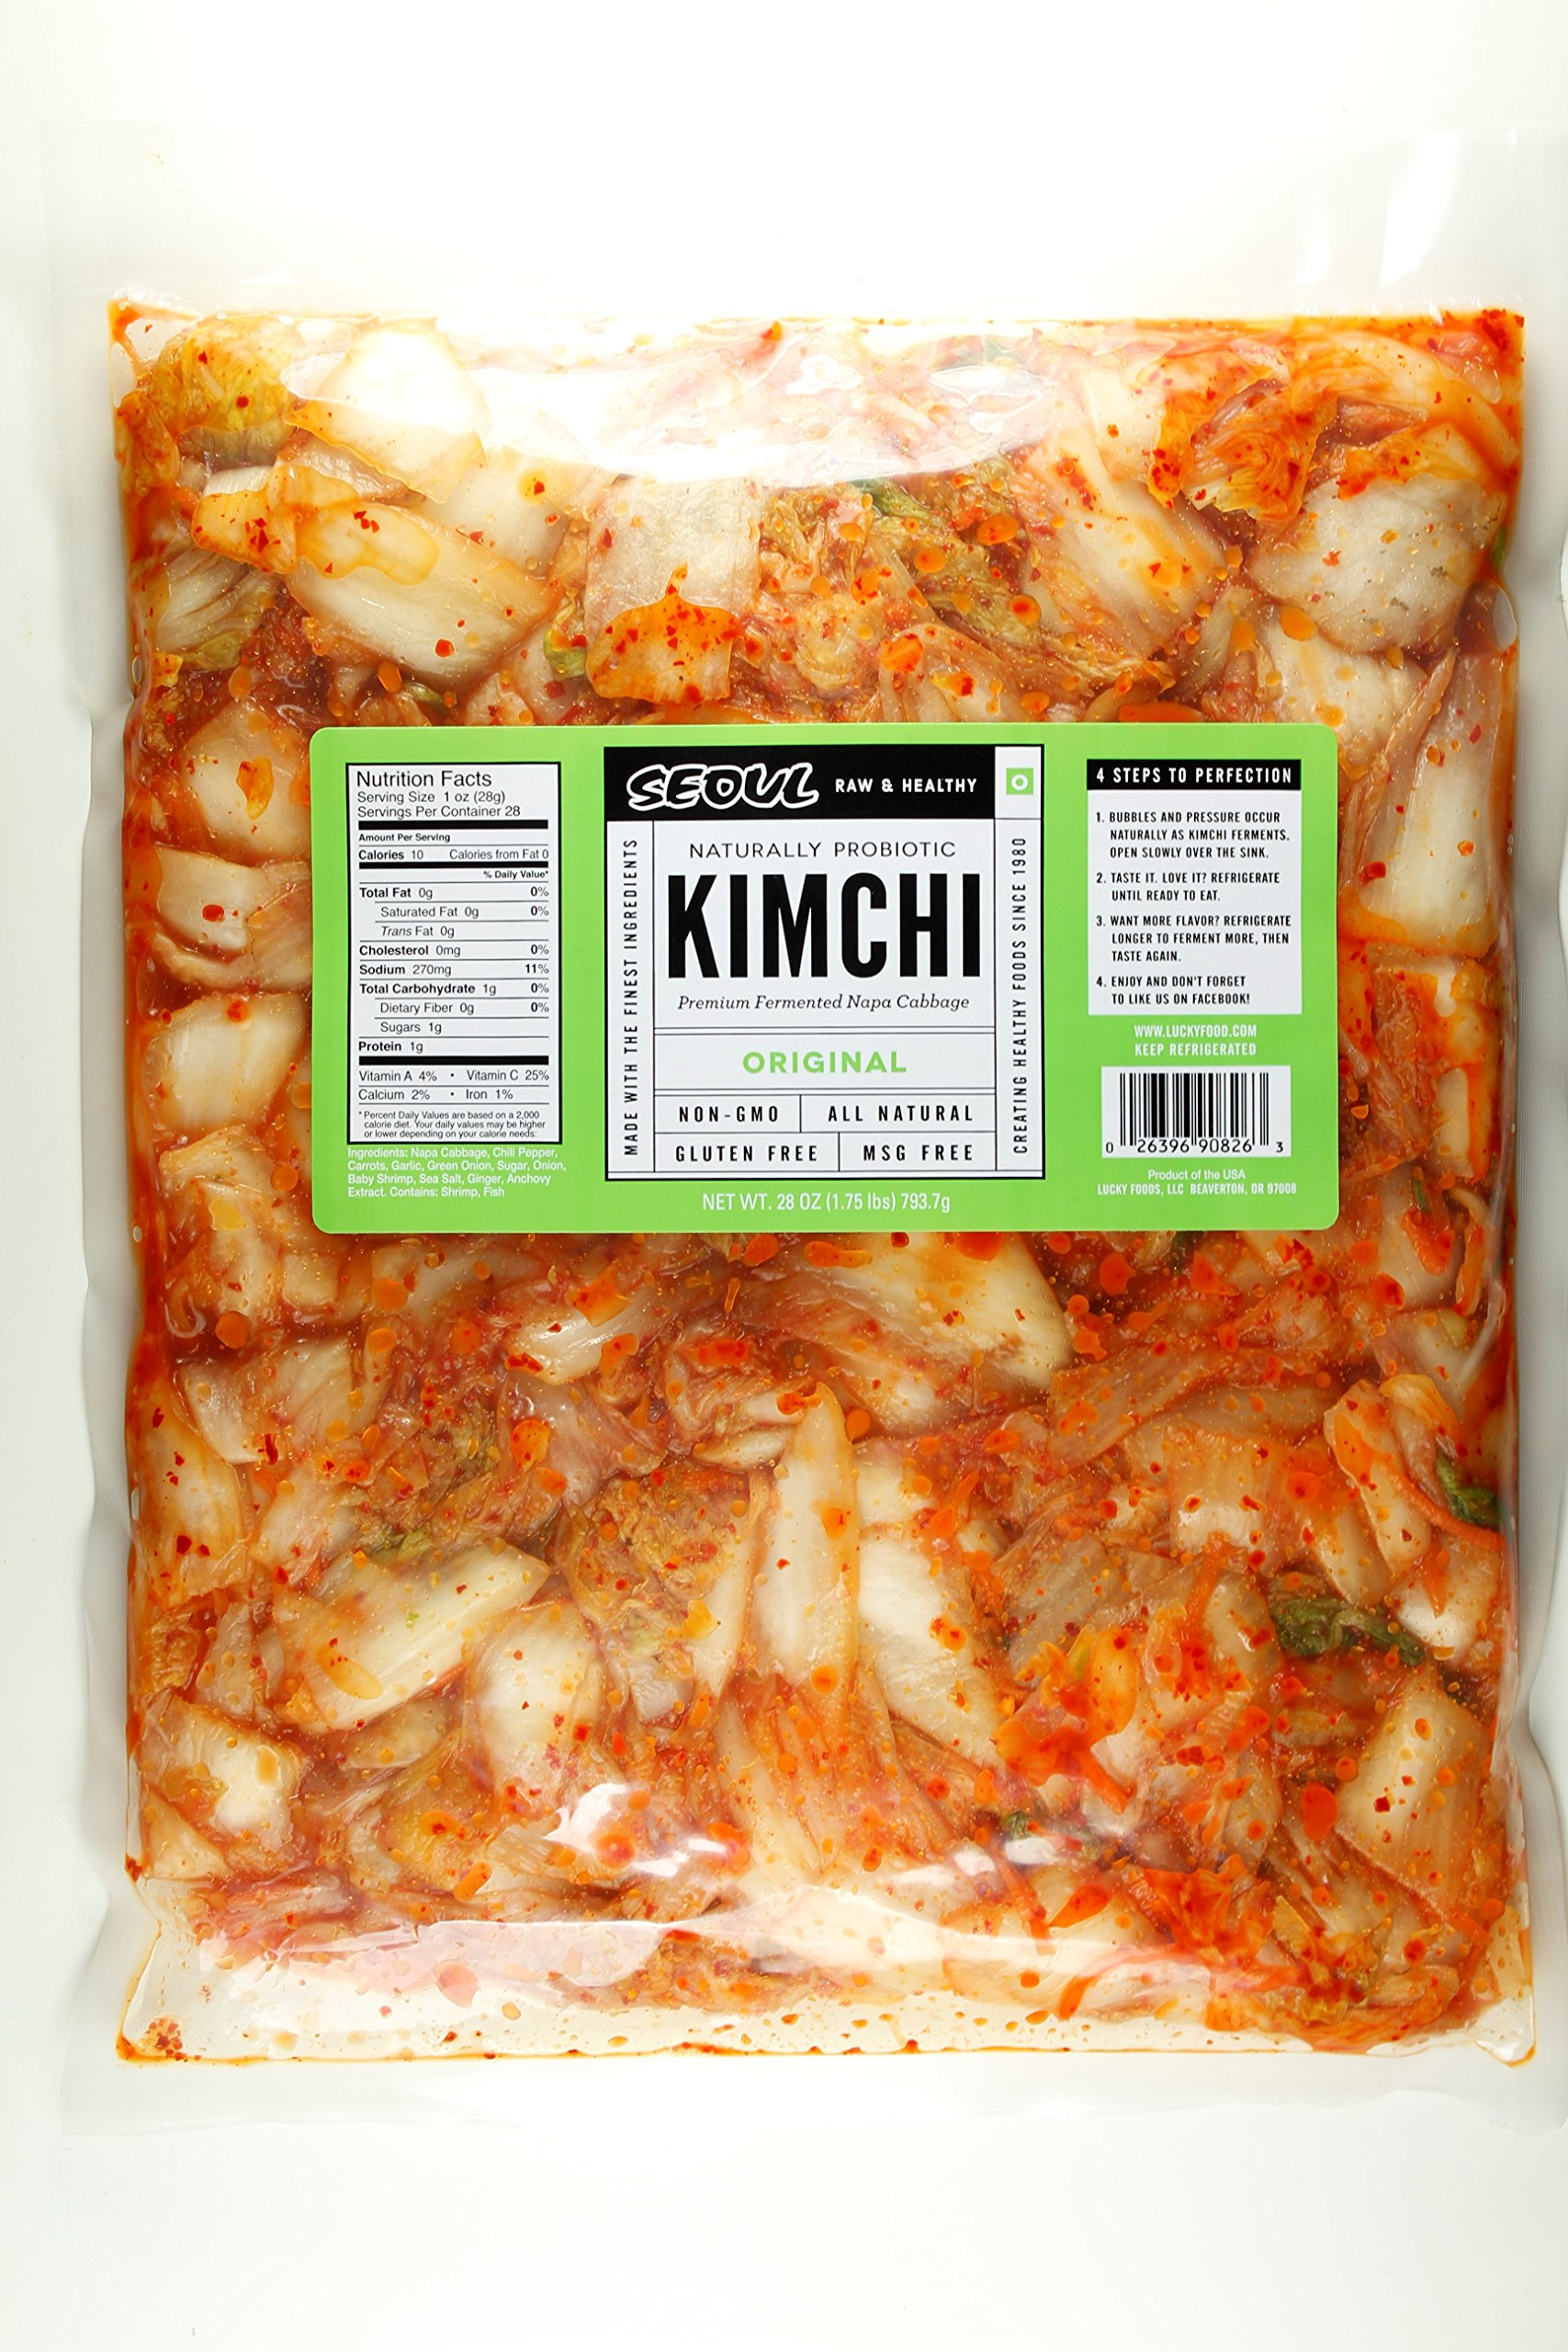 Seoul Kimchi Original 28oz (1.75LB) Fresh & Healthy All Natural Gluten Free MADE UPON ORDER by Lucky Foods LLC